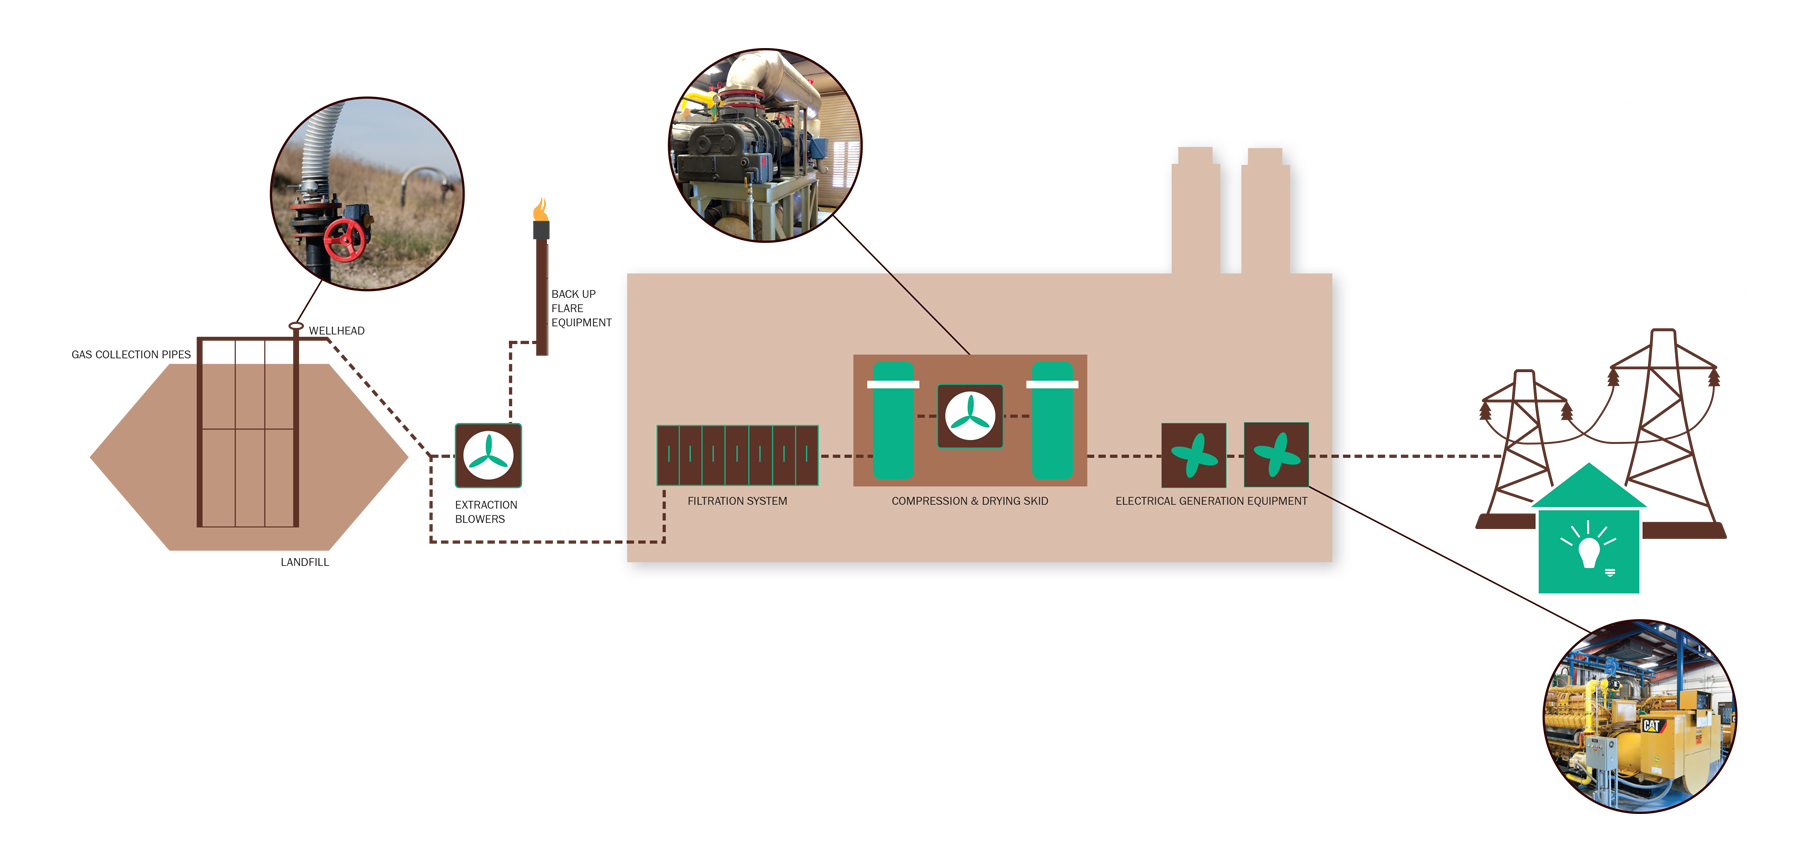 Hancock Generating Station Mid Michigan Trash Recycling Granger Ohio Home Wiring Circuit Diagram Produces Electricity From Landfill Gas 24 Hours A Day 365 Days Year The Projects Partners And County